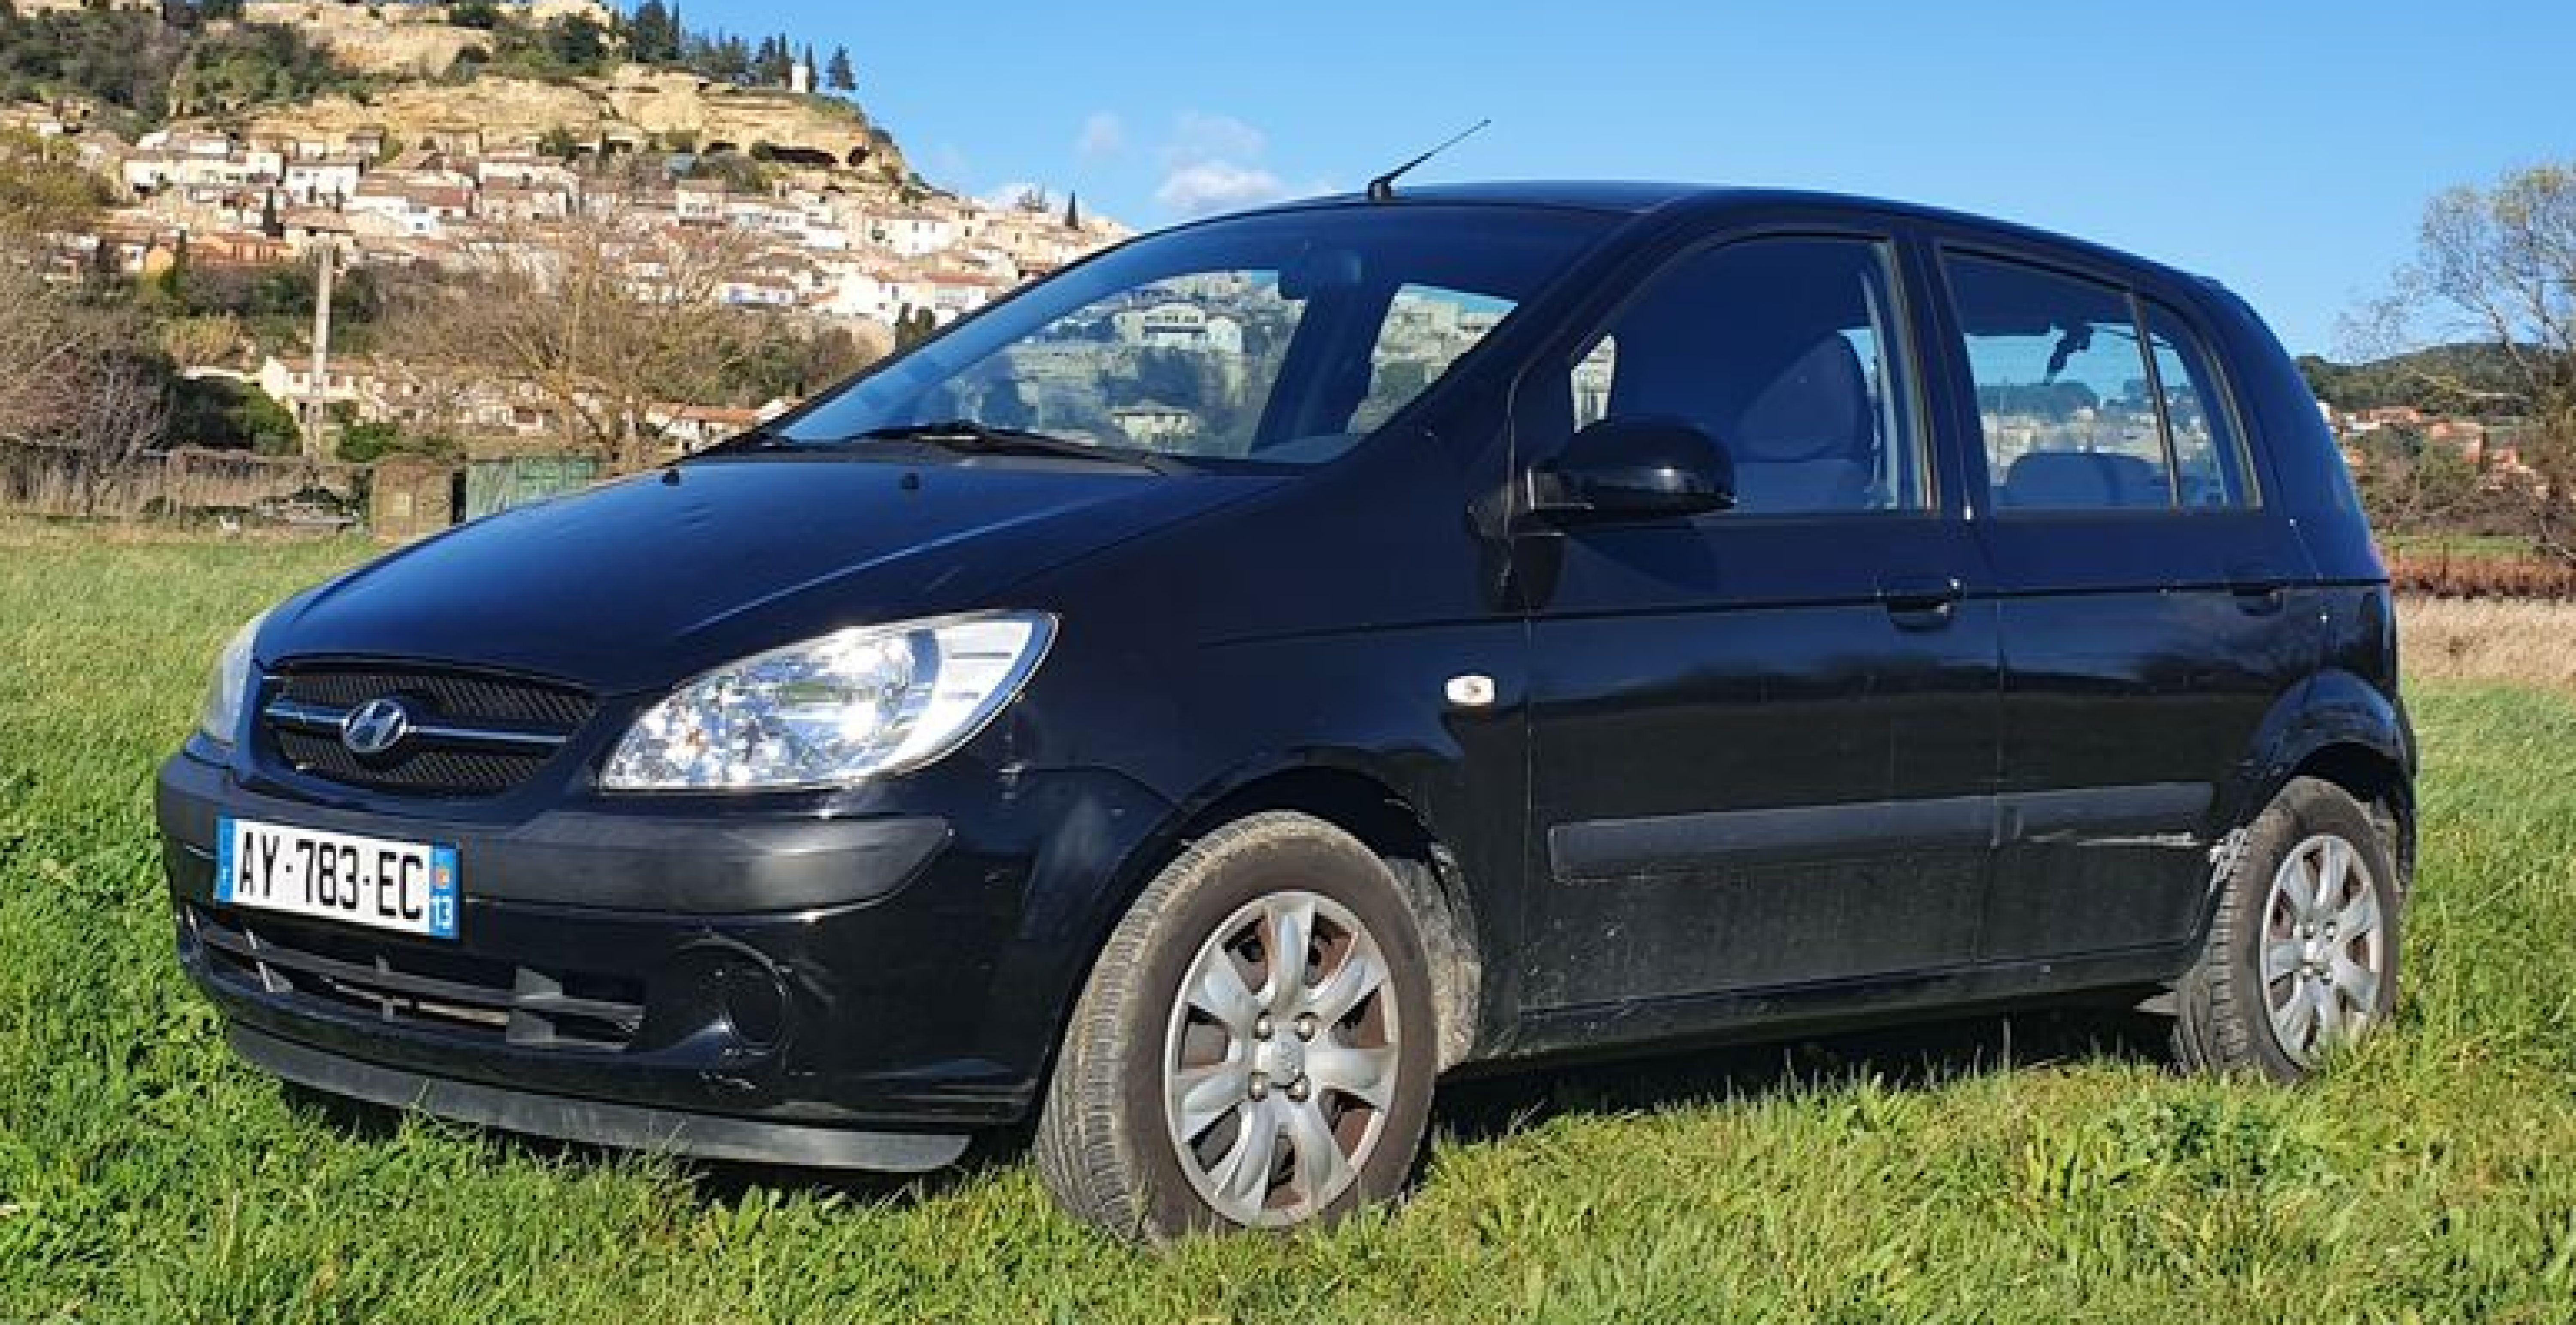 Hyundai getz - Photo 1